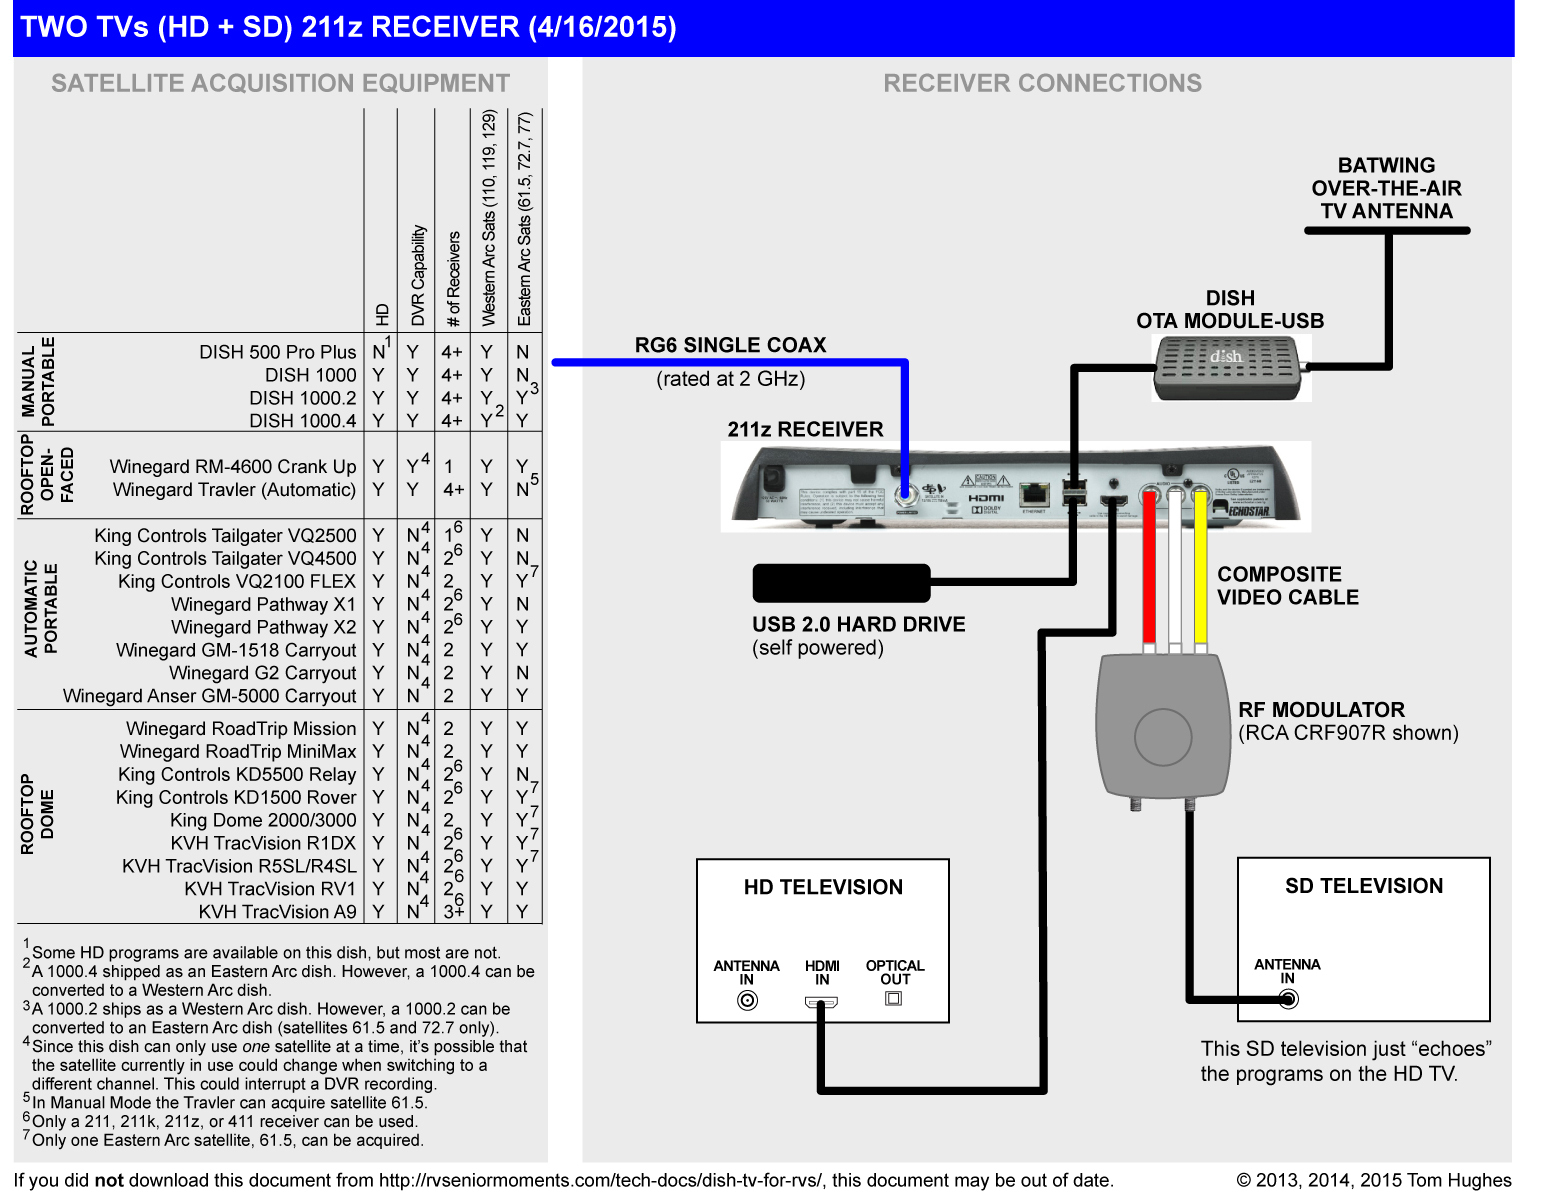 DIAGRAM] Dish 722 Receiver Wiring Diagram For 2 Televisions FULL Version HD  Quality 2 Televisions - AAWIRINGLOOM.MAMI-WATA.FR